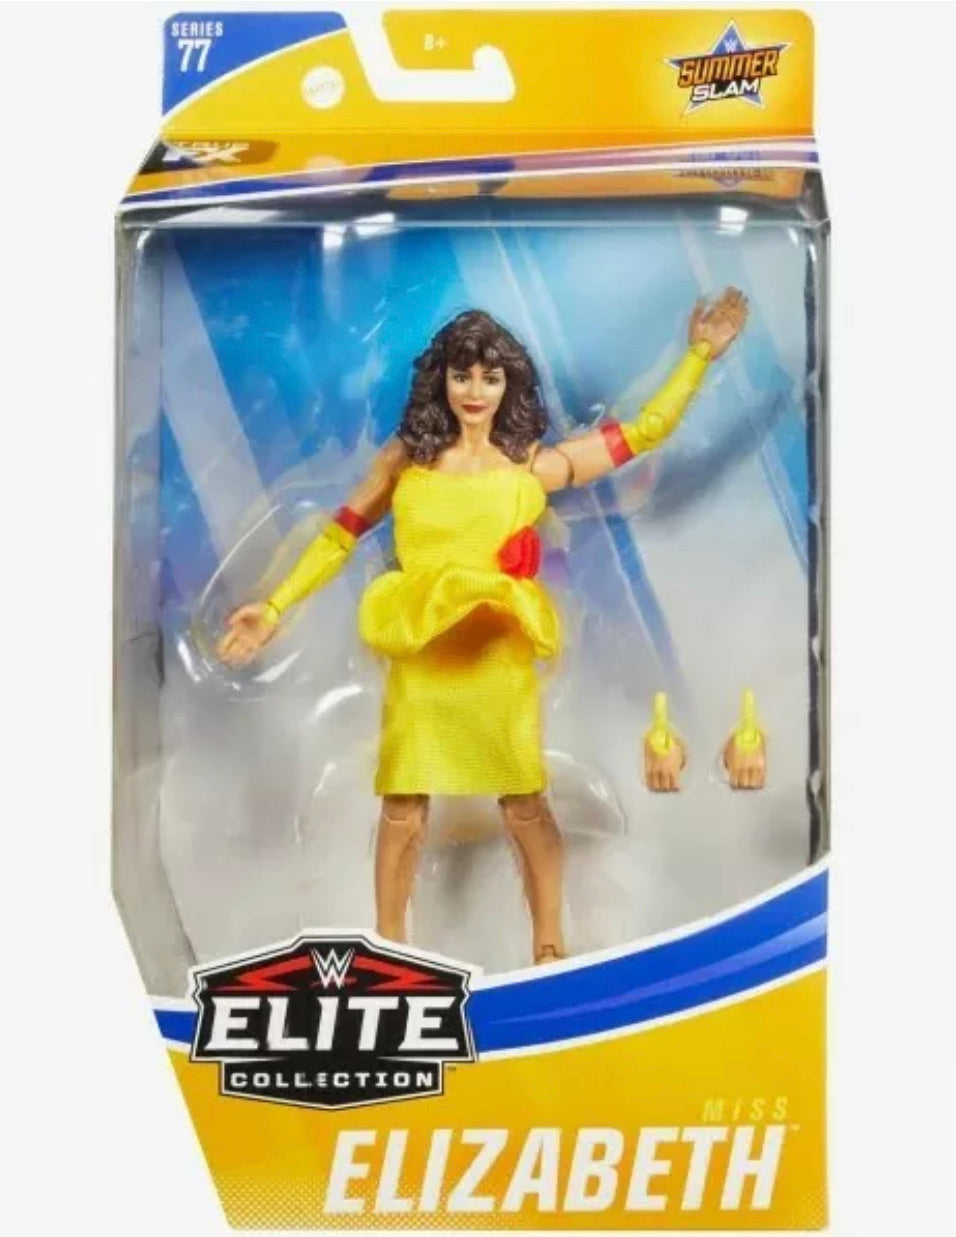 WWE Miss Elizabeth Elite Collection Series 77 Summer Slam Yellow Dress 2020